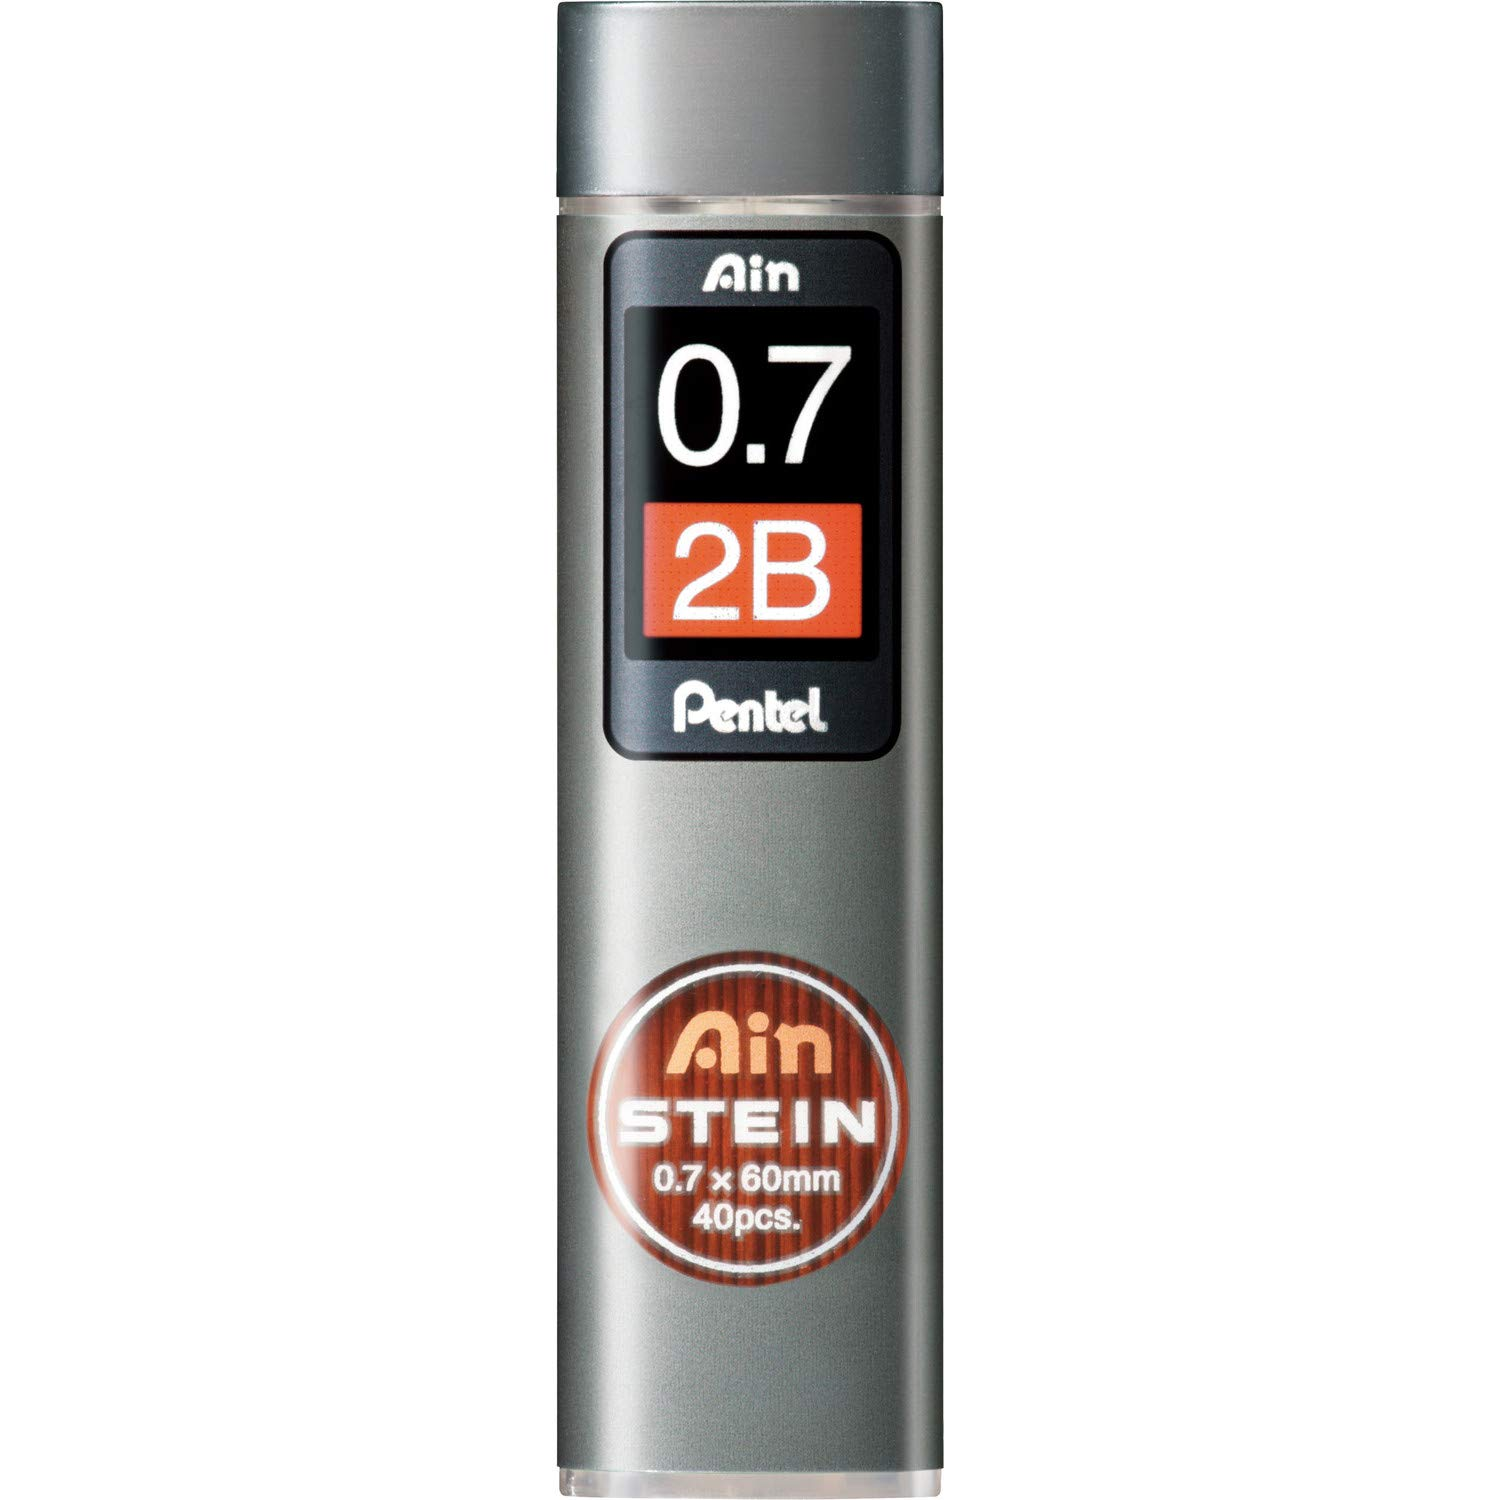 Pentel Mechanical Pencil Lead, Ain Stein, 0.7mm, 2B (C277-2